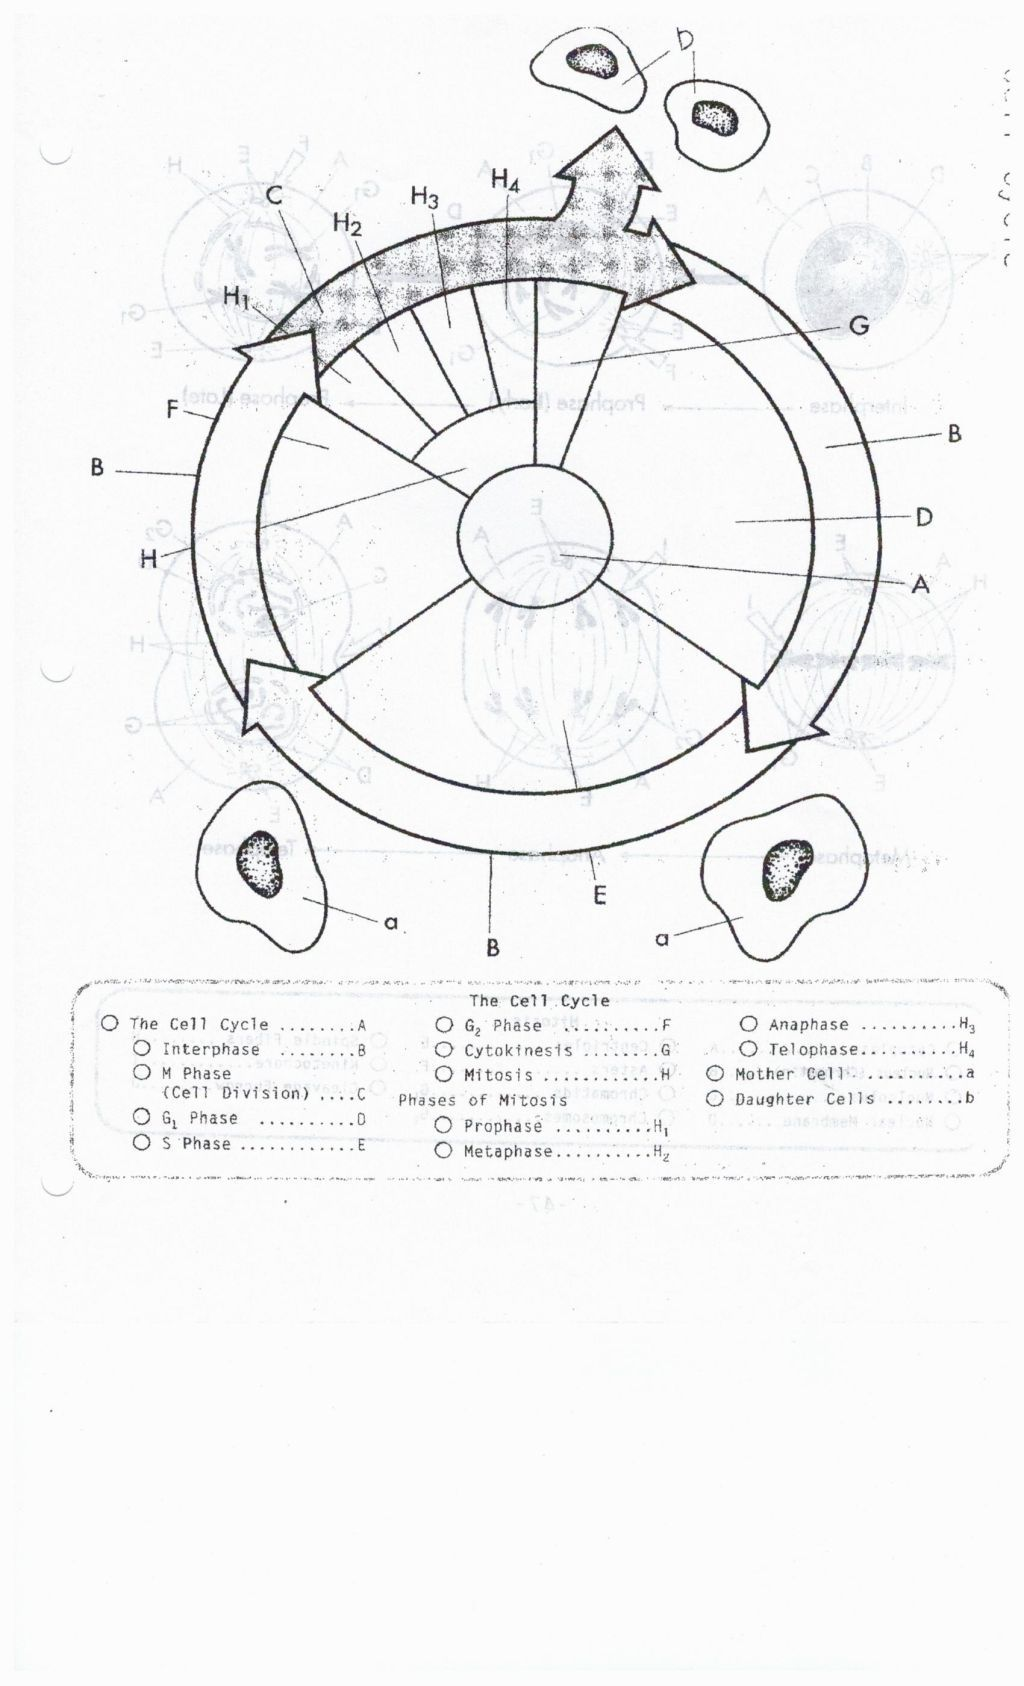 Worksheets The Cell Cycle Coloring Worksheet Answers